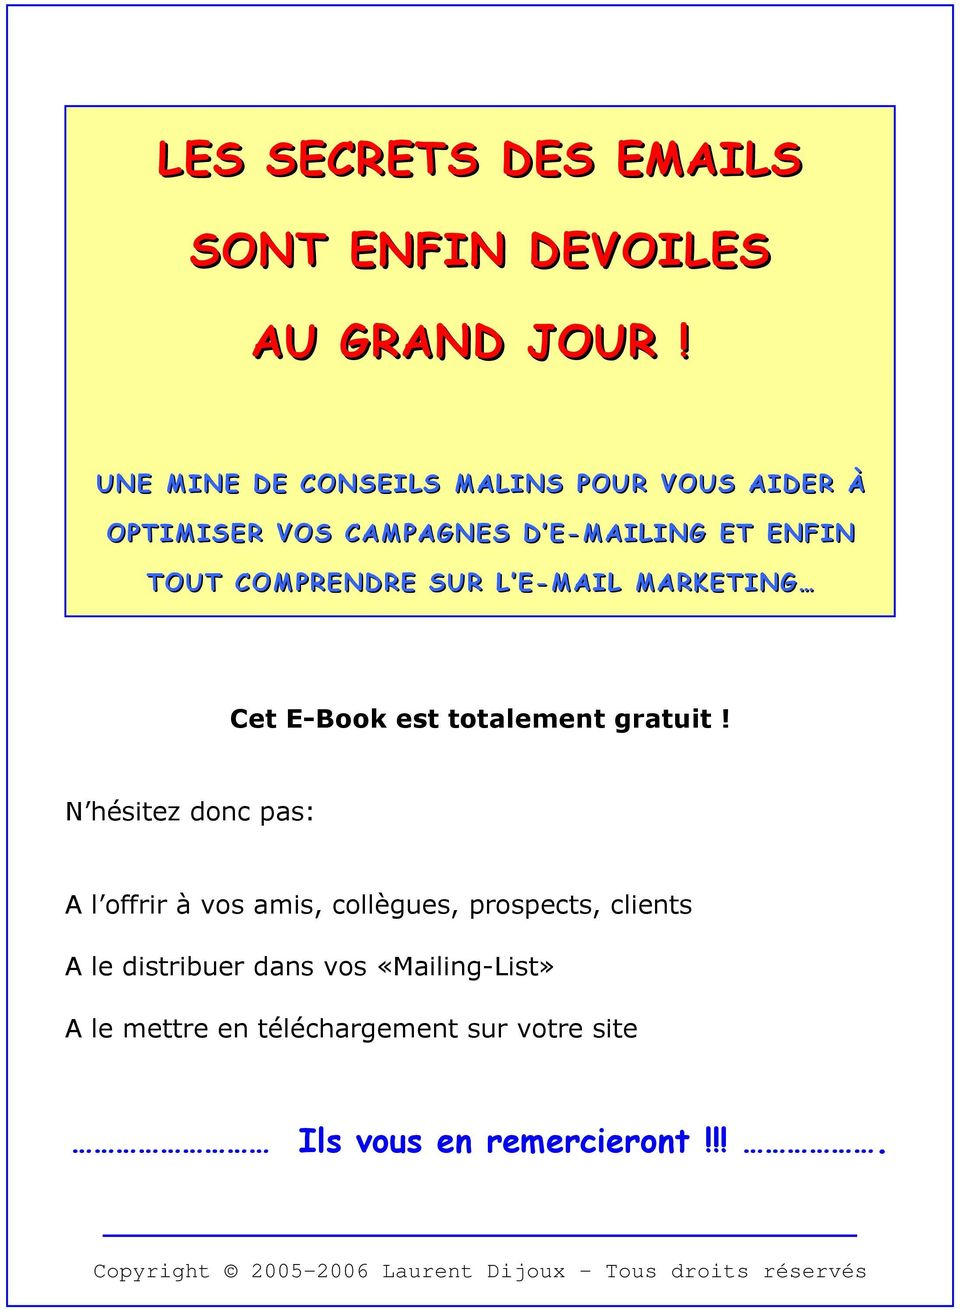 E-MAIL MARKETING Cet E-Book est totalement gratuit!